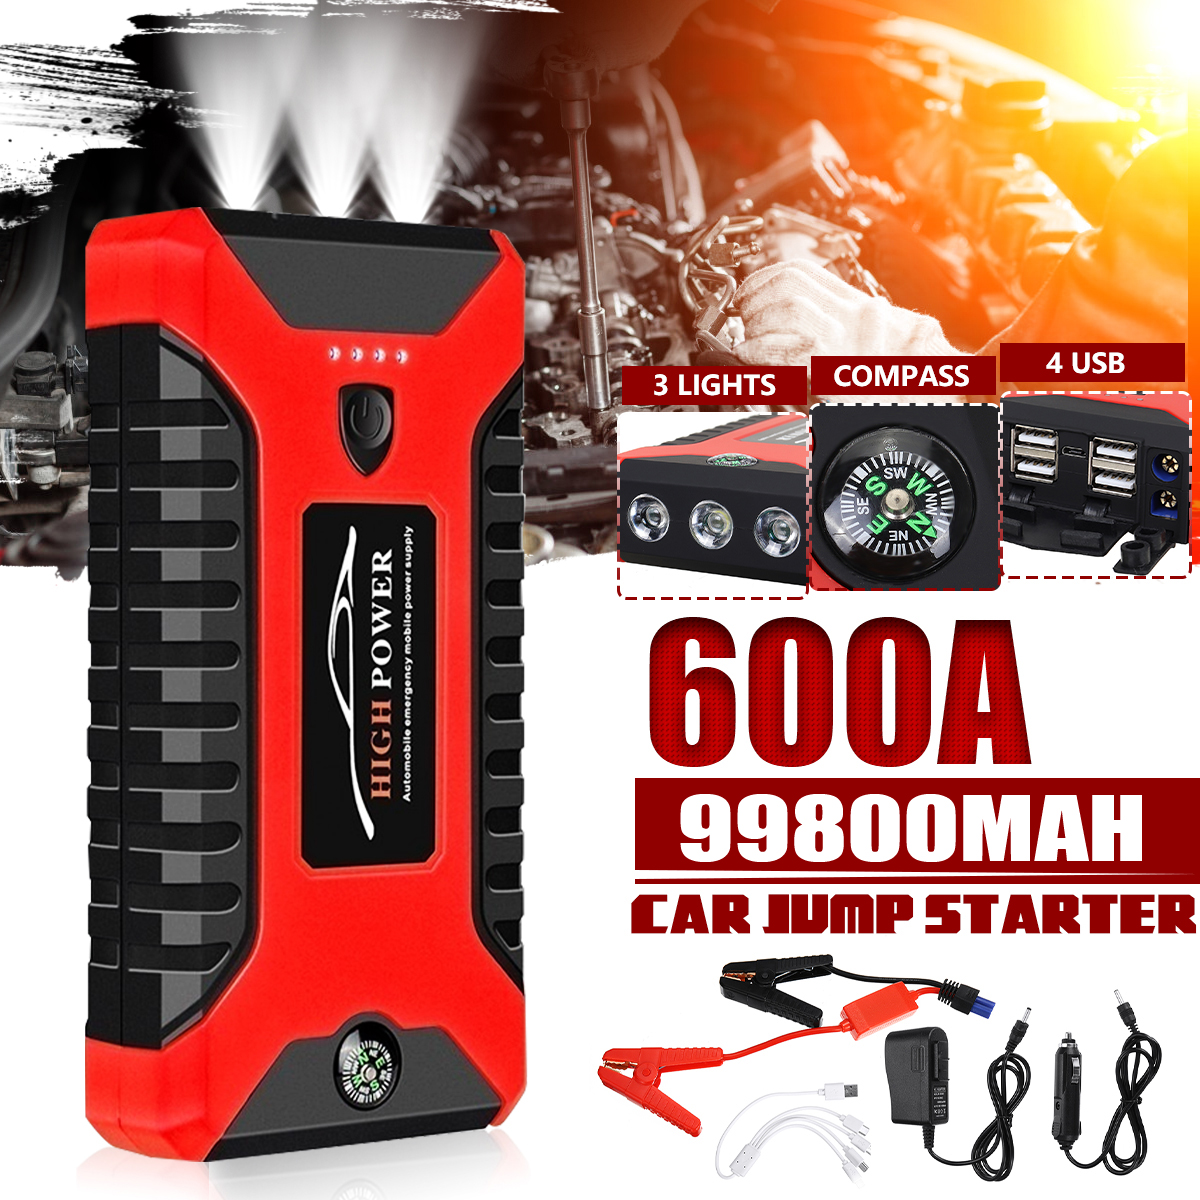 Multifunction 99800mAh 600A Car Jump Starter Portable Lighter 4 USB Power Bank Car Battery Booster Charger Starting Device